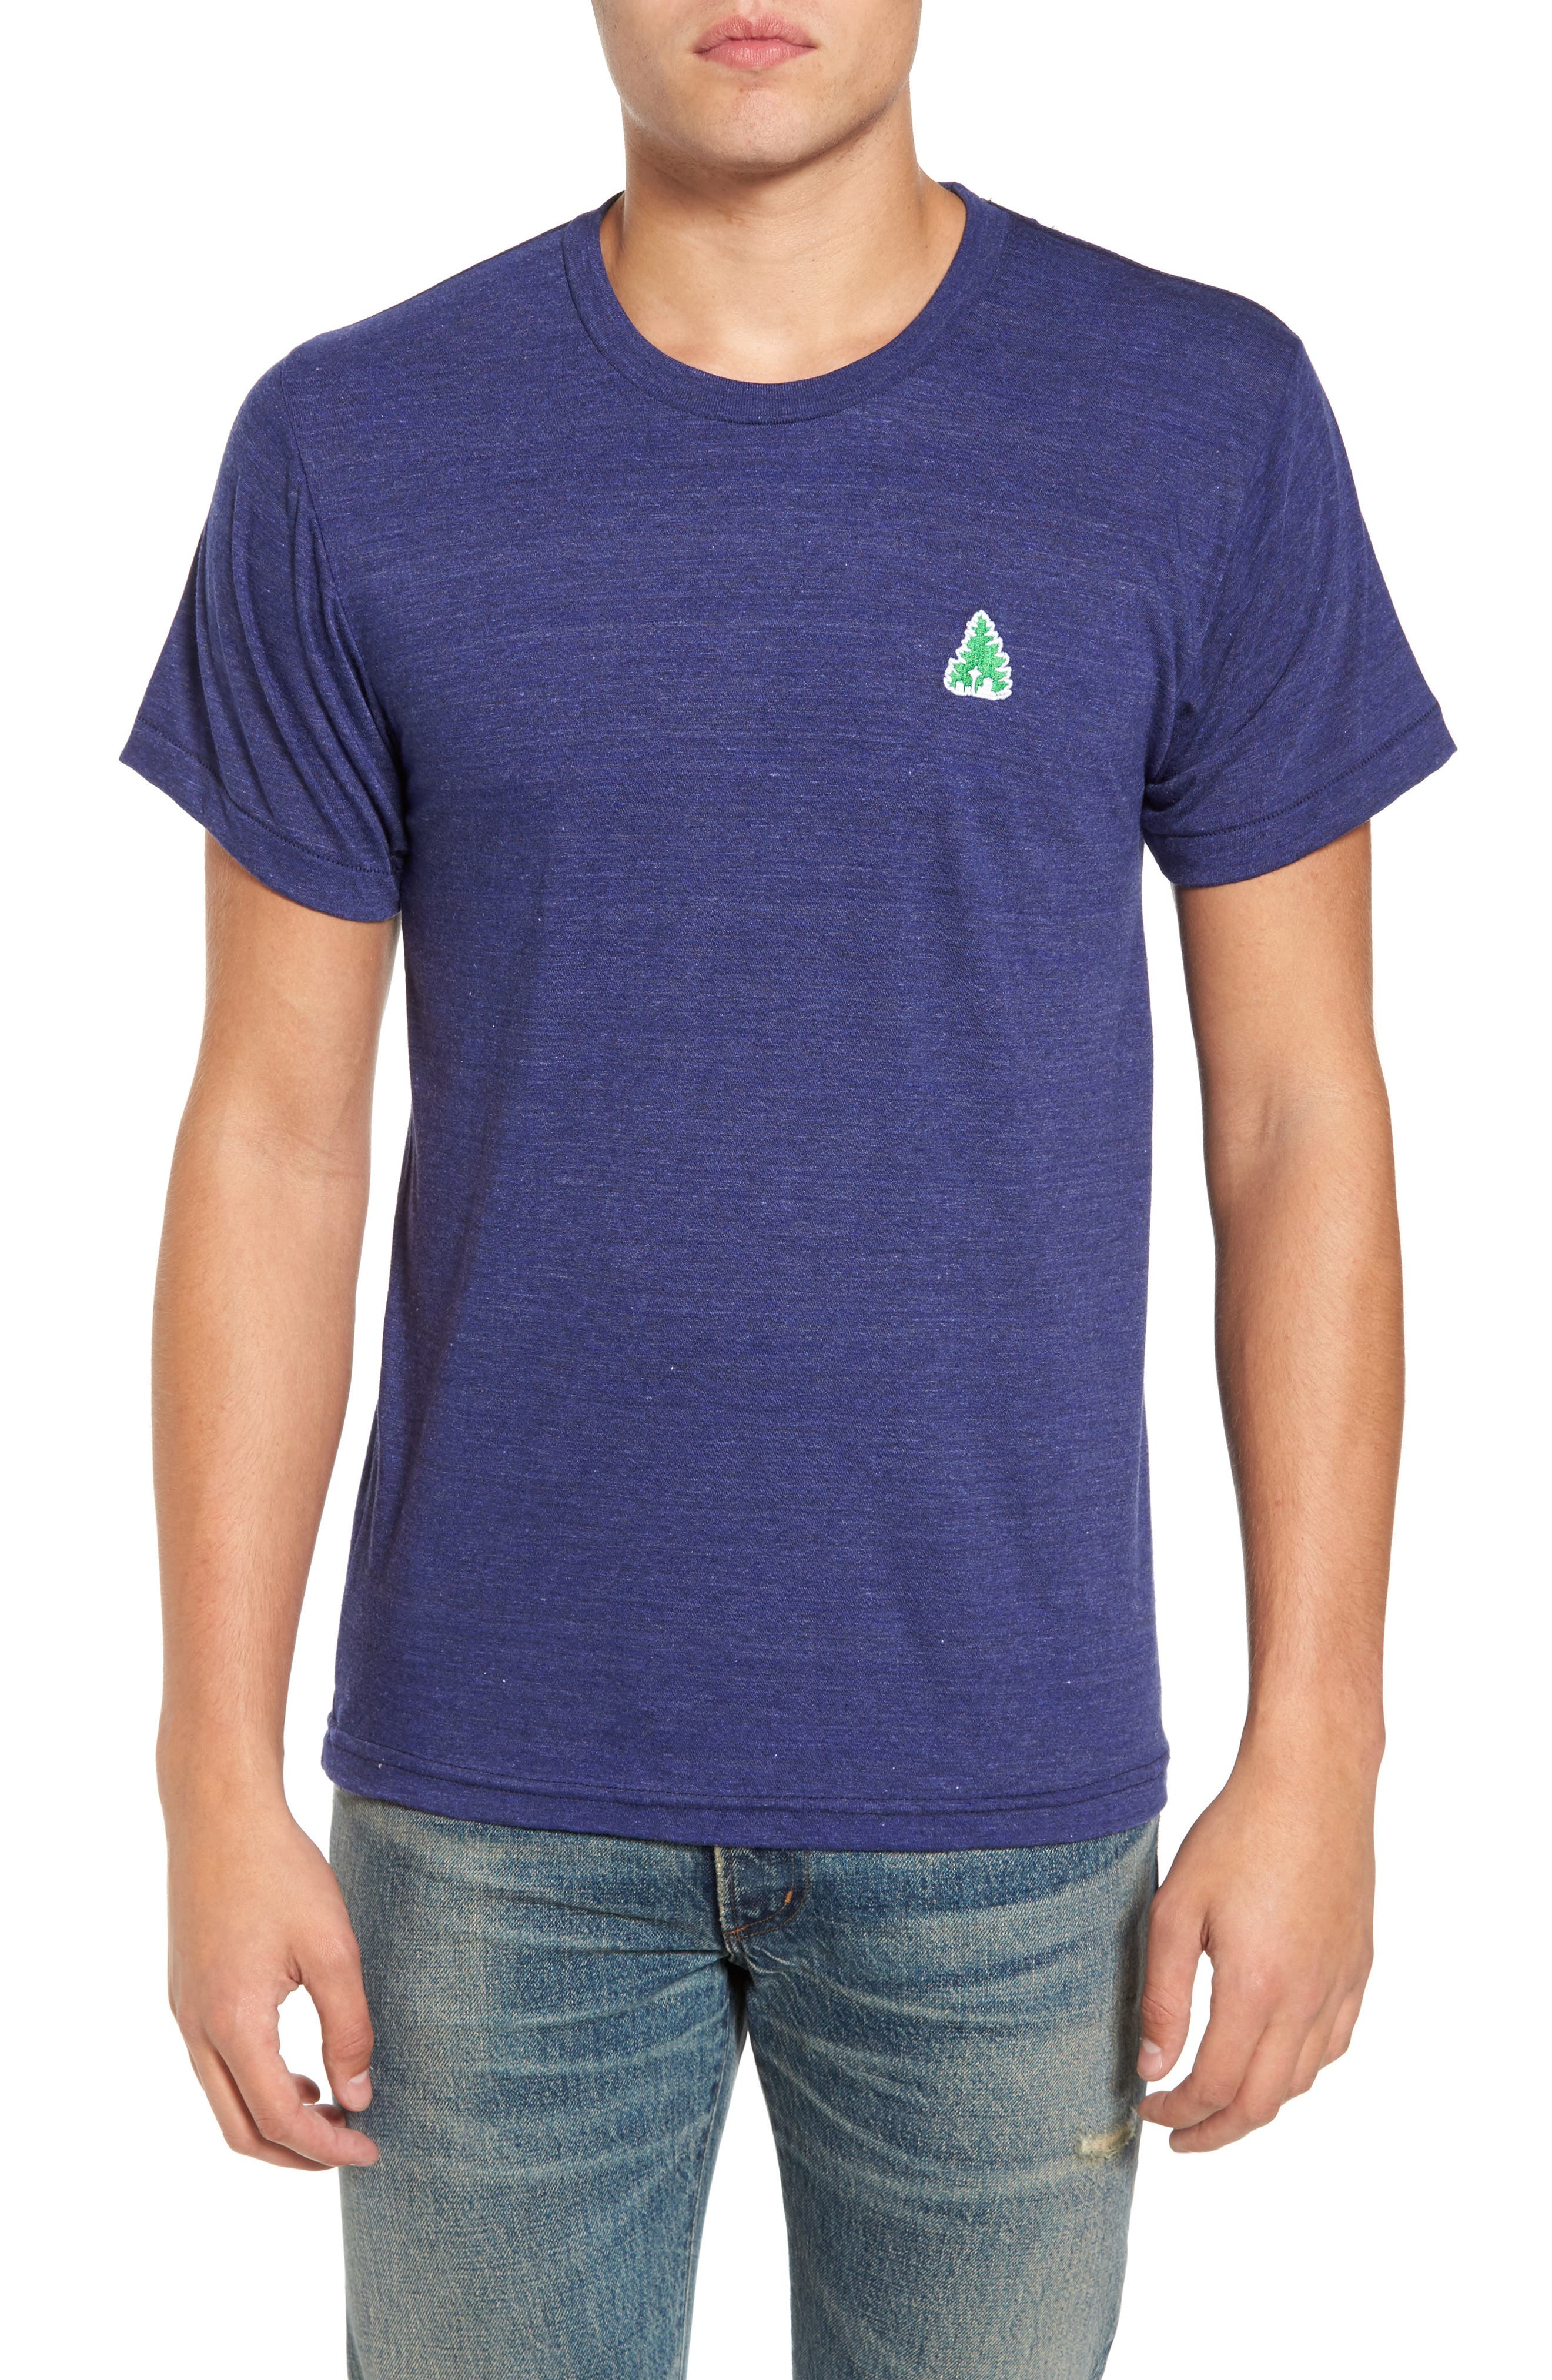 Johnny Tree Embroidered T-Shirt,                             Main thumbnail 1, color,                             Blue